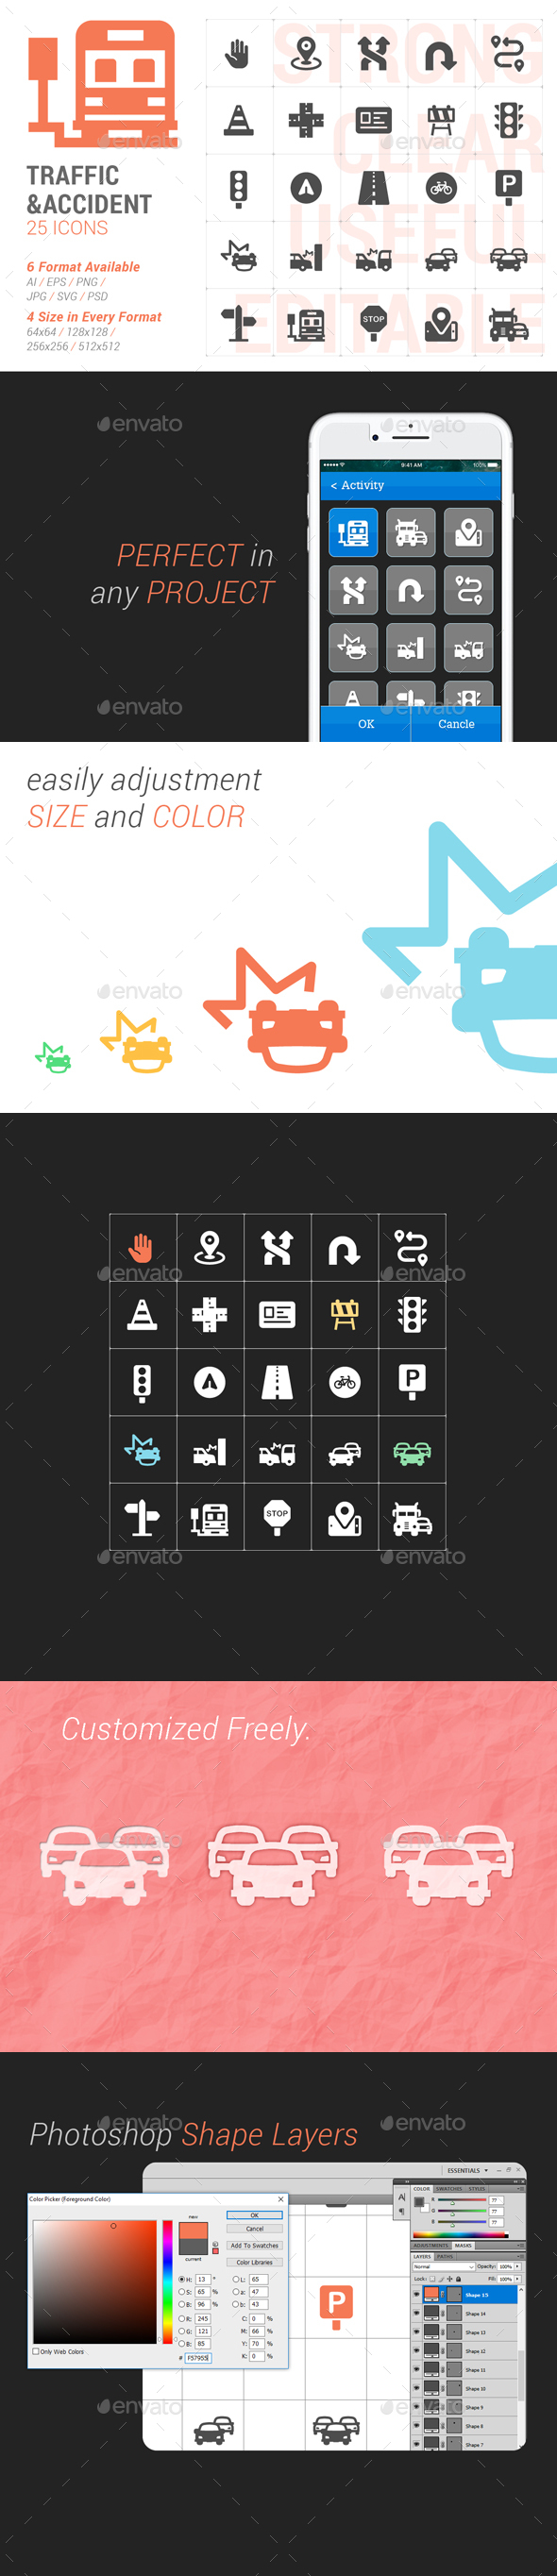 Traffic & Accident Filled Icon - Icons